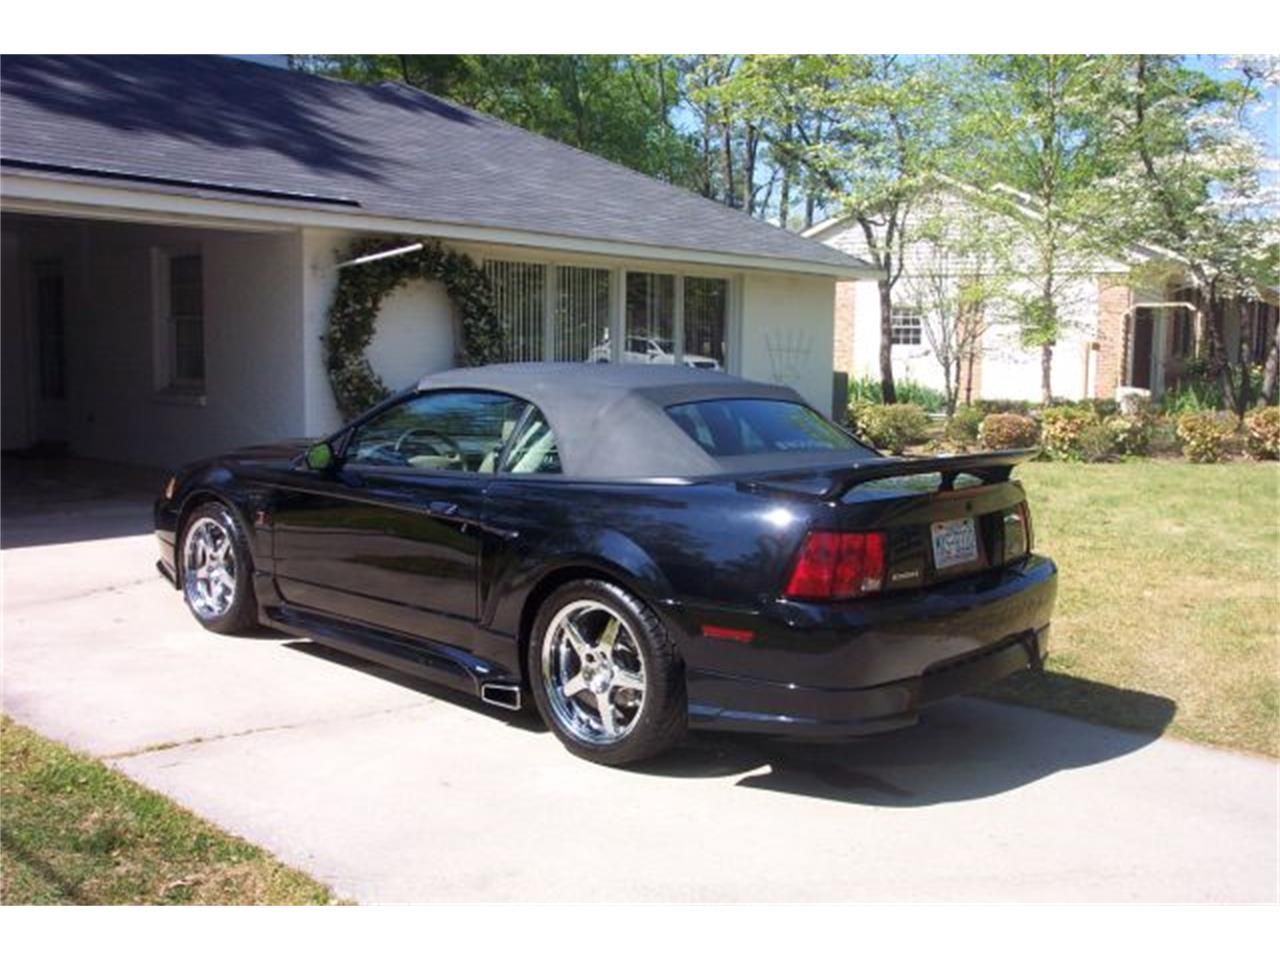 Large Picture of '00 Ford Mustang (Roush) - $55,000.00 - GAM7